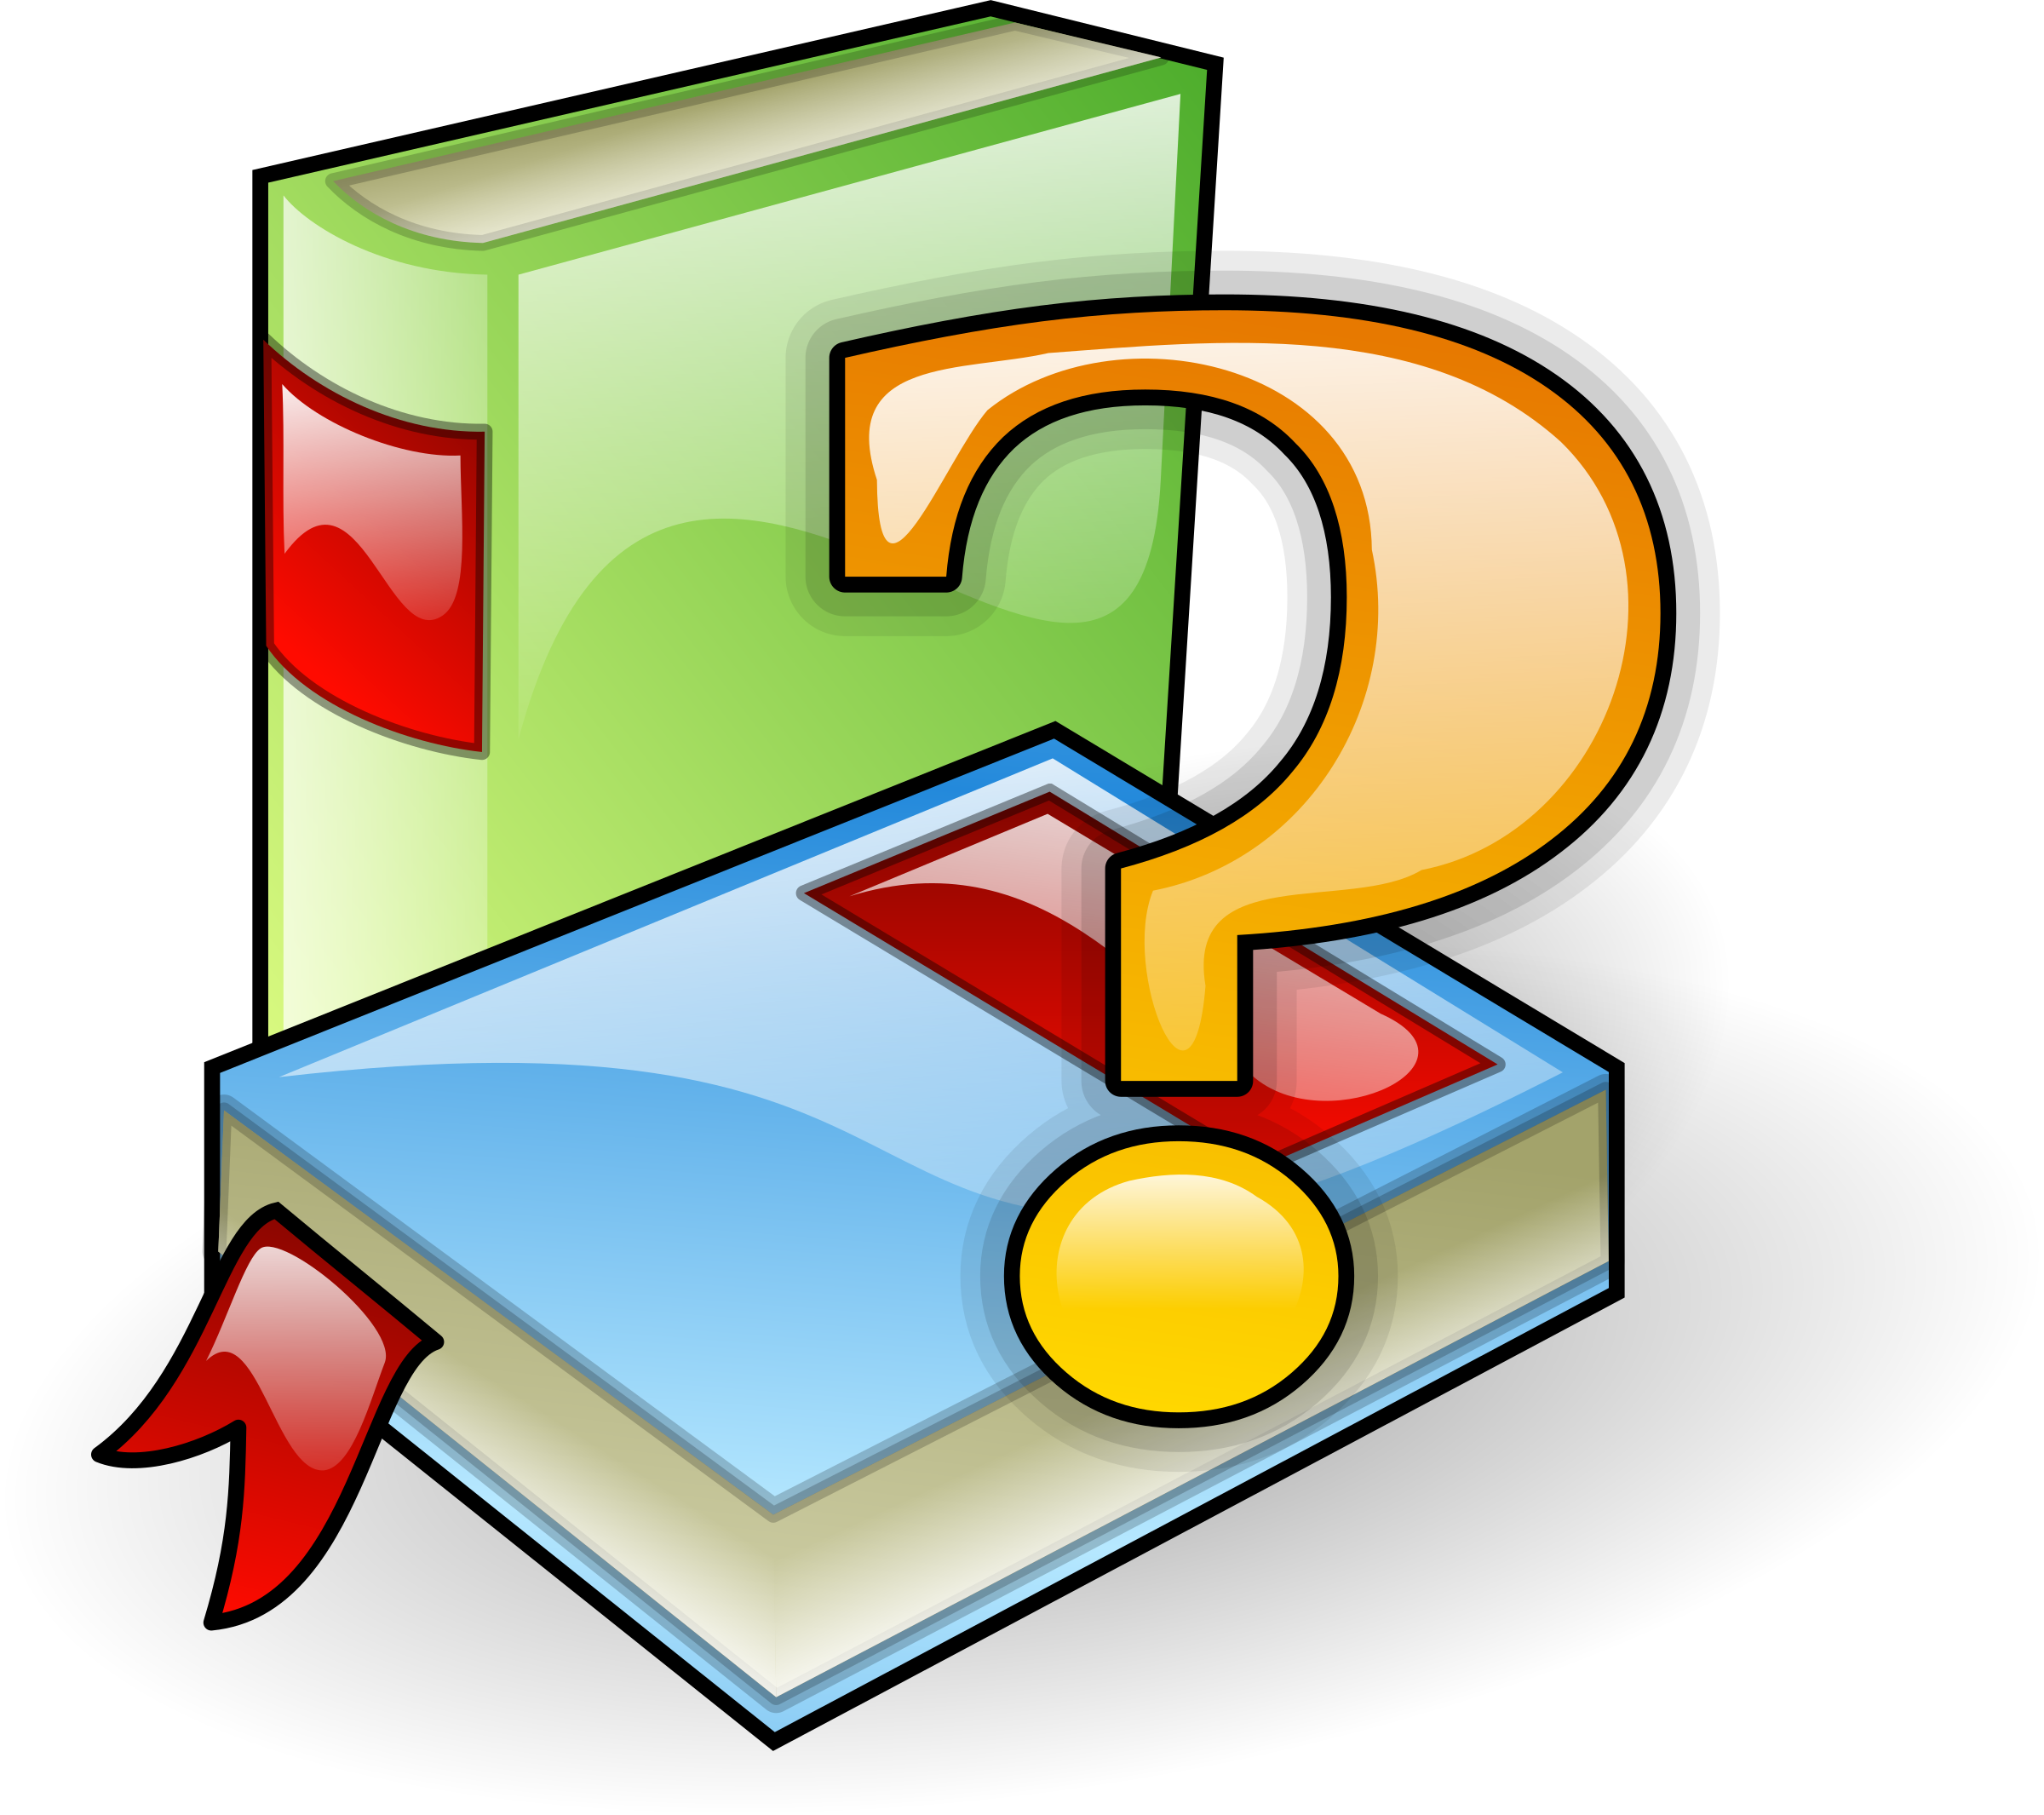 Clipart definition study. Books with question mark